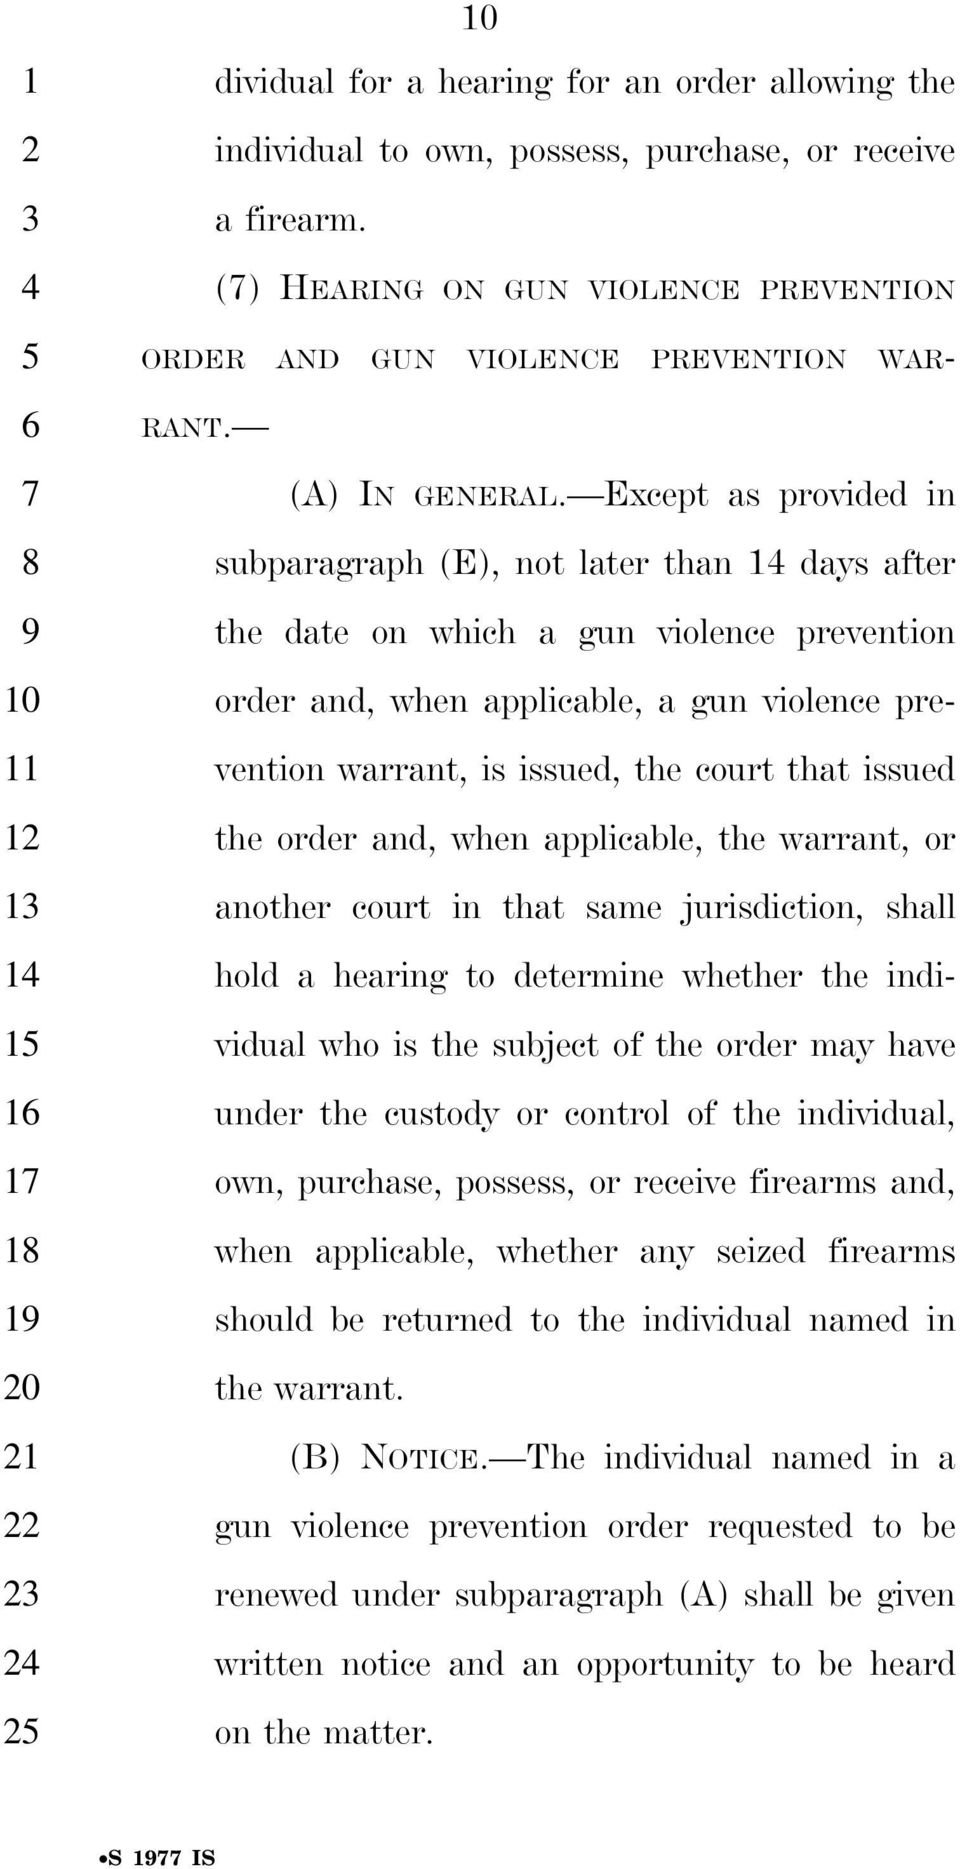 Except as provided in subparagraph (E), not later than days after the date on which a gun violence prevention order and, when applicable, a gun violence prevention warrant, is issued, the court that